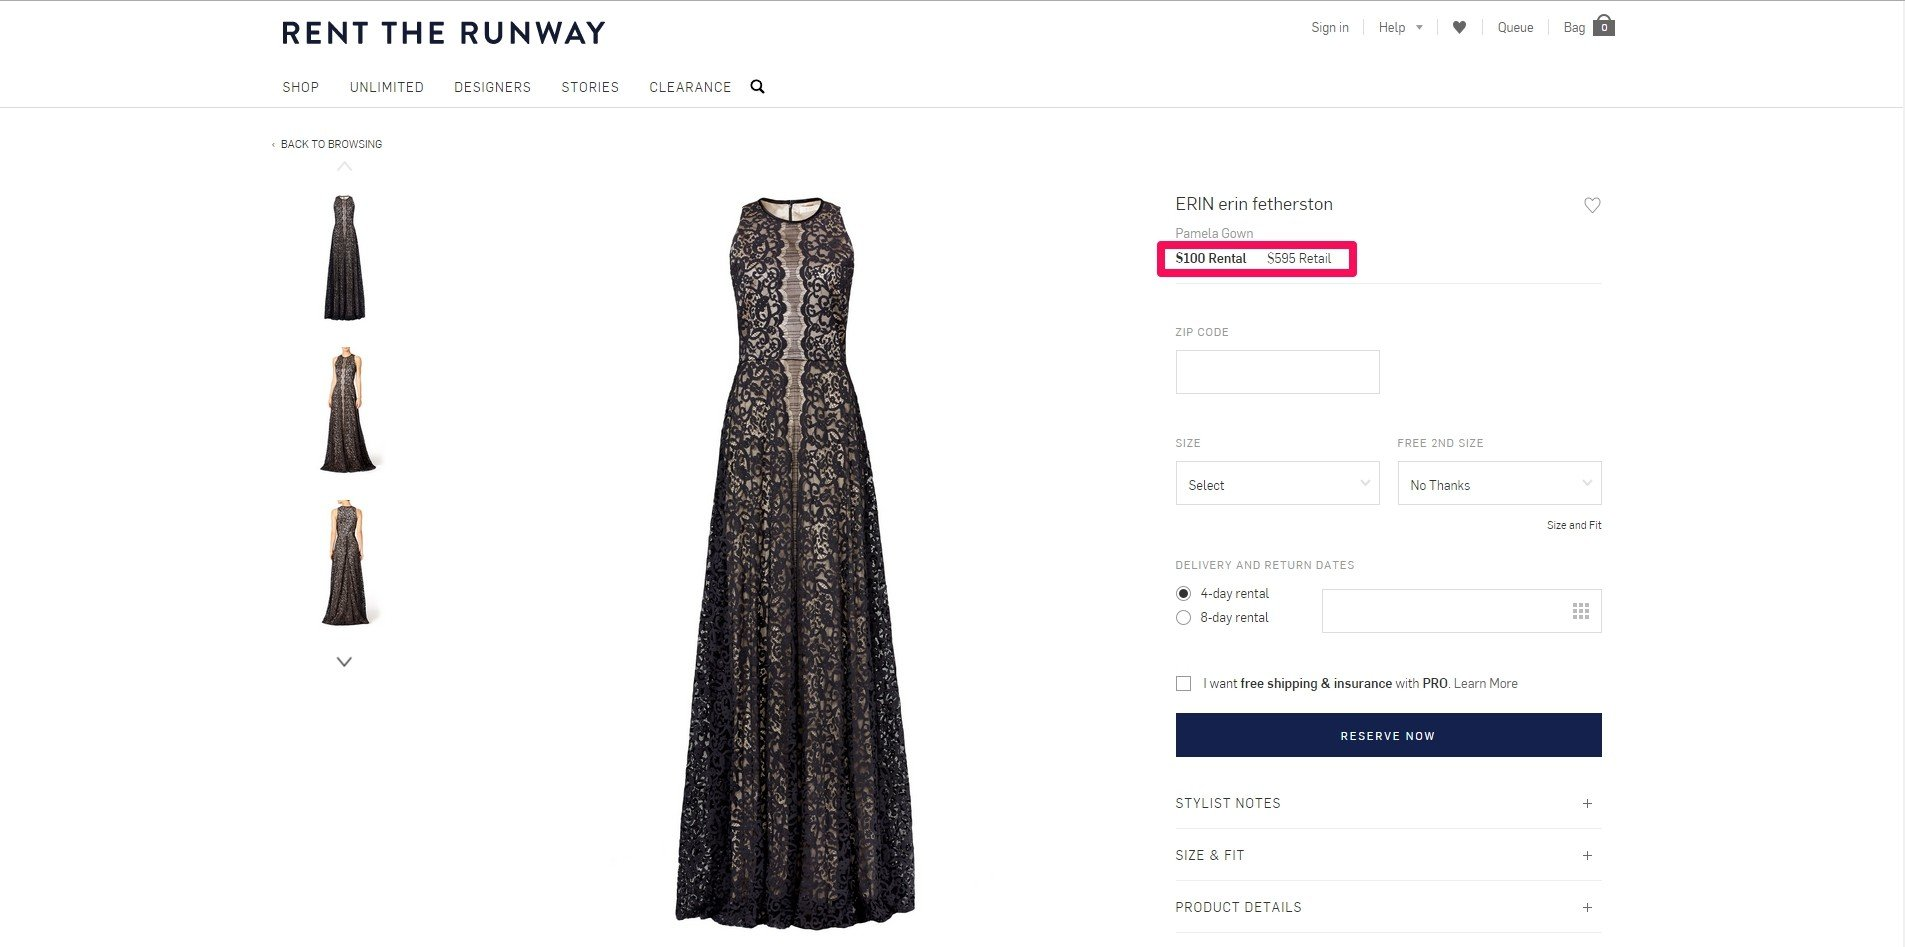 rent the runway's rental vs purchase price